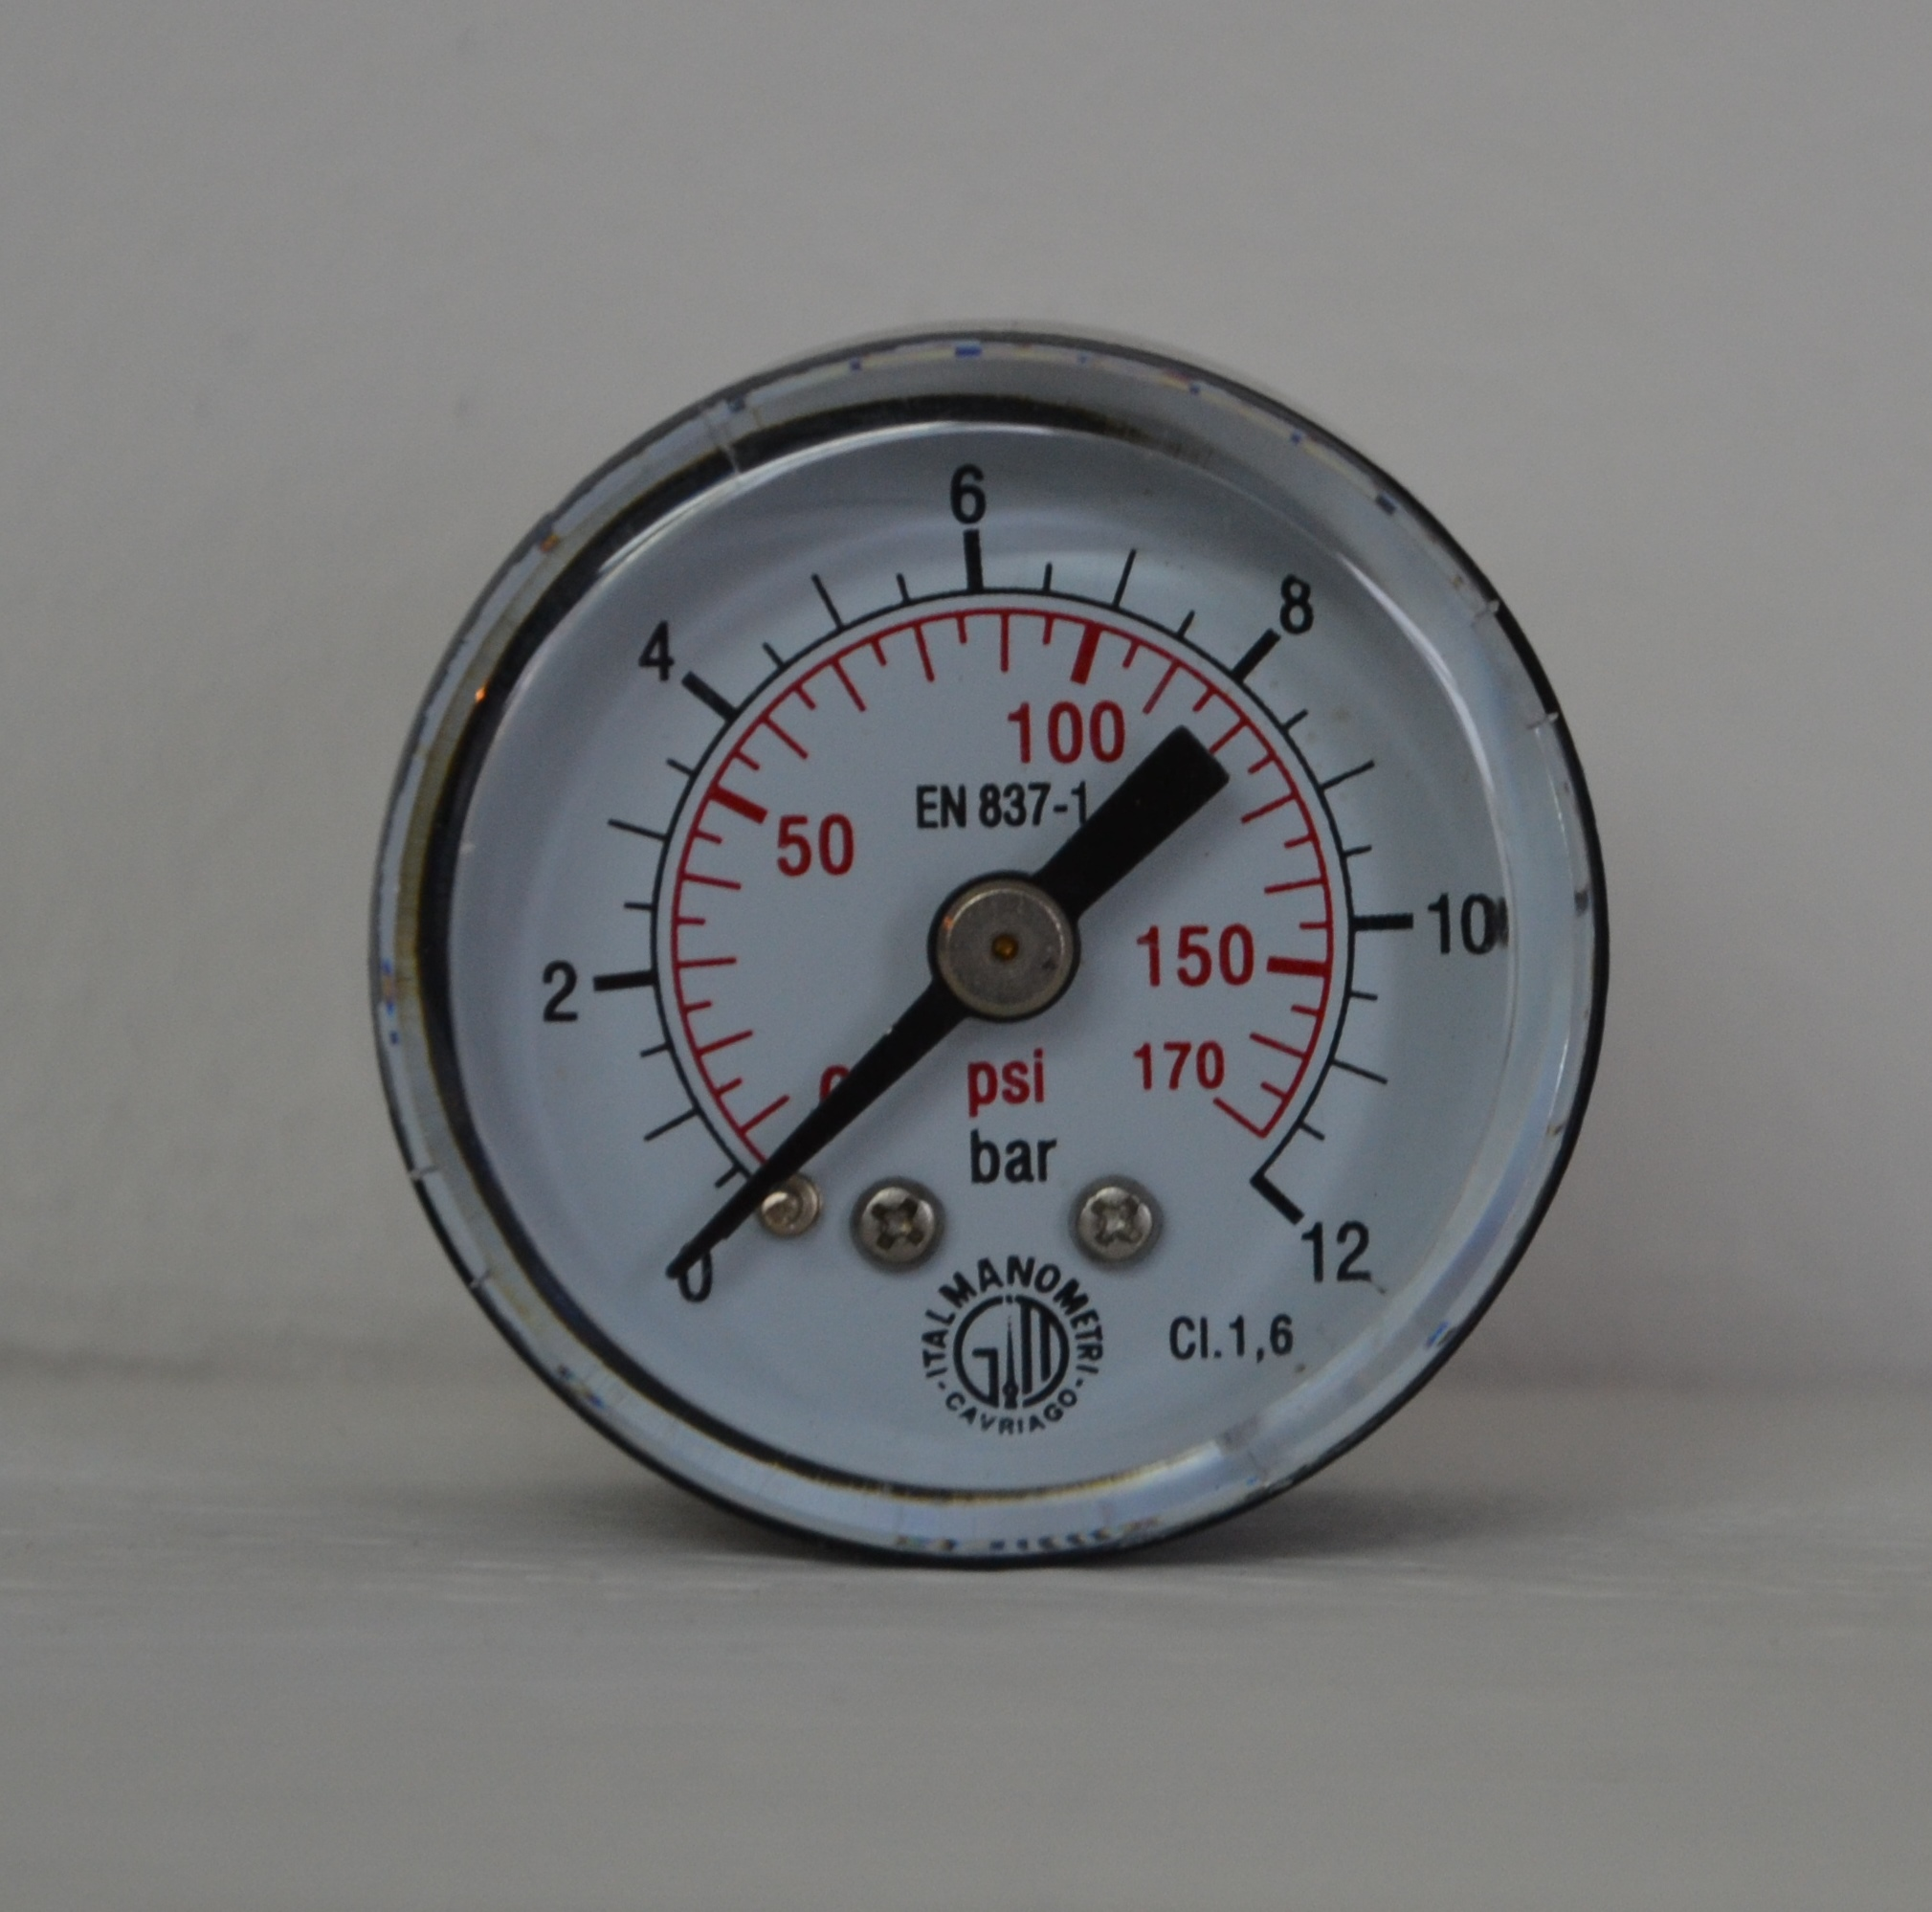 Manometer Image